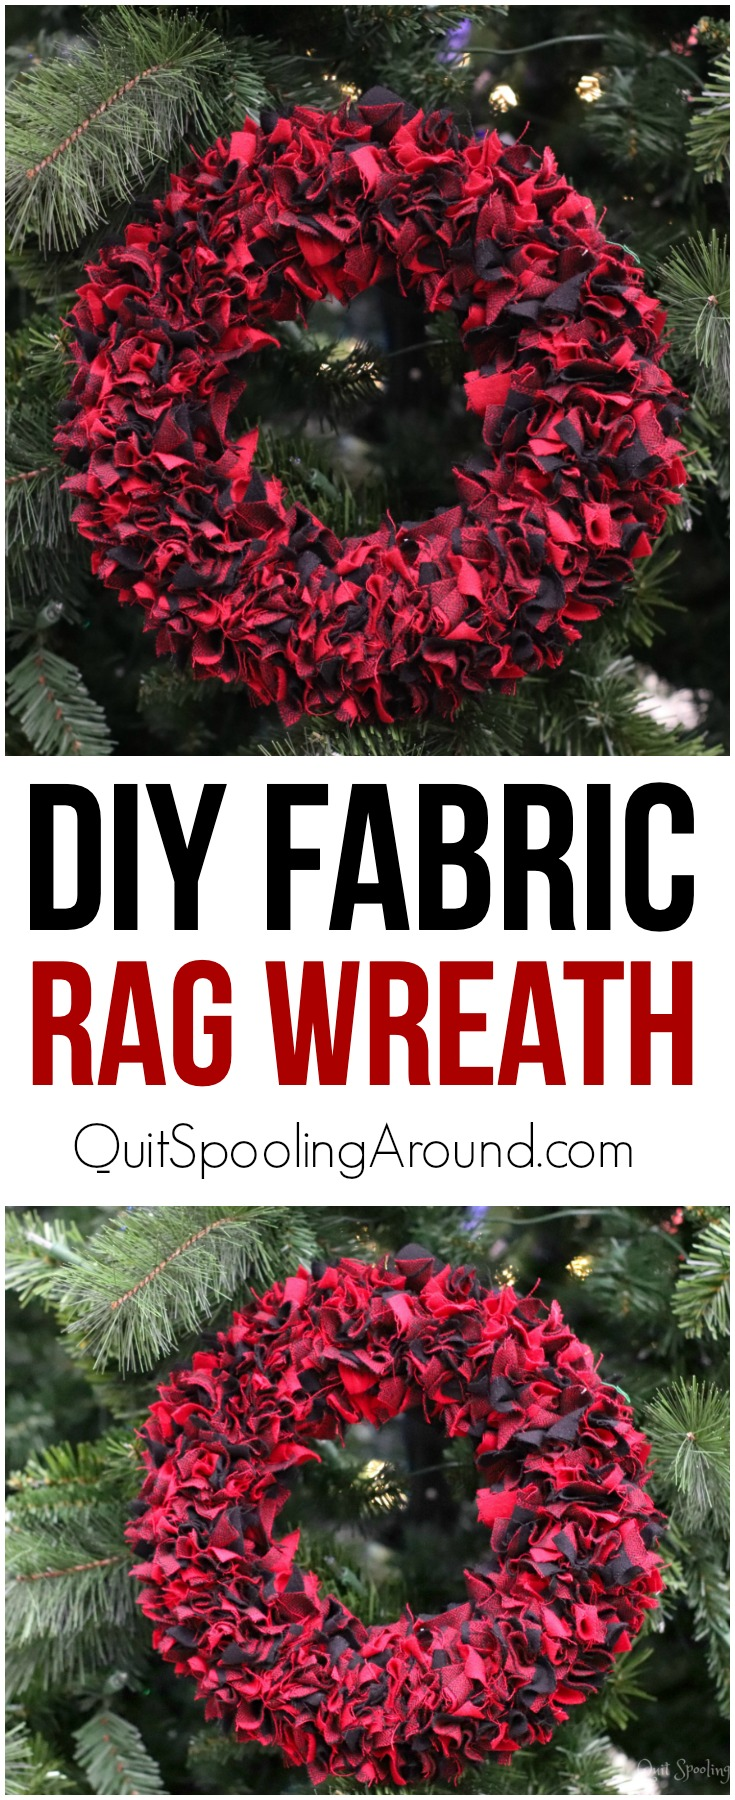 DIY Fabric Rag Wreath